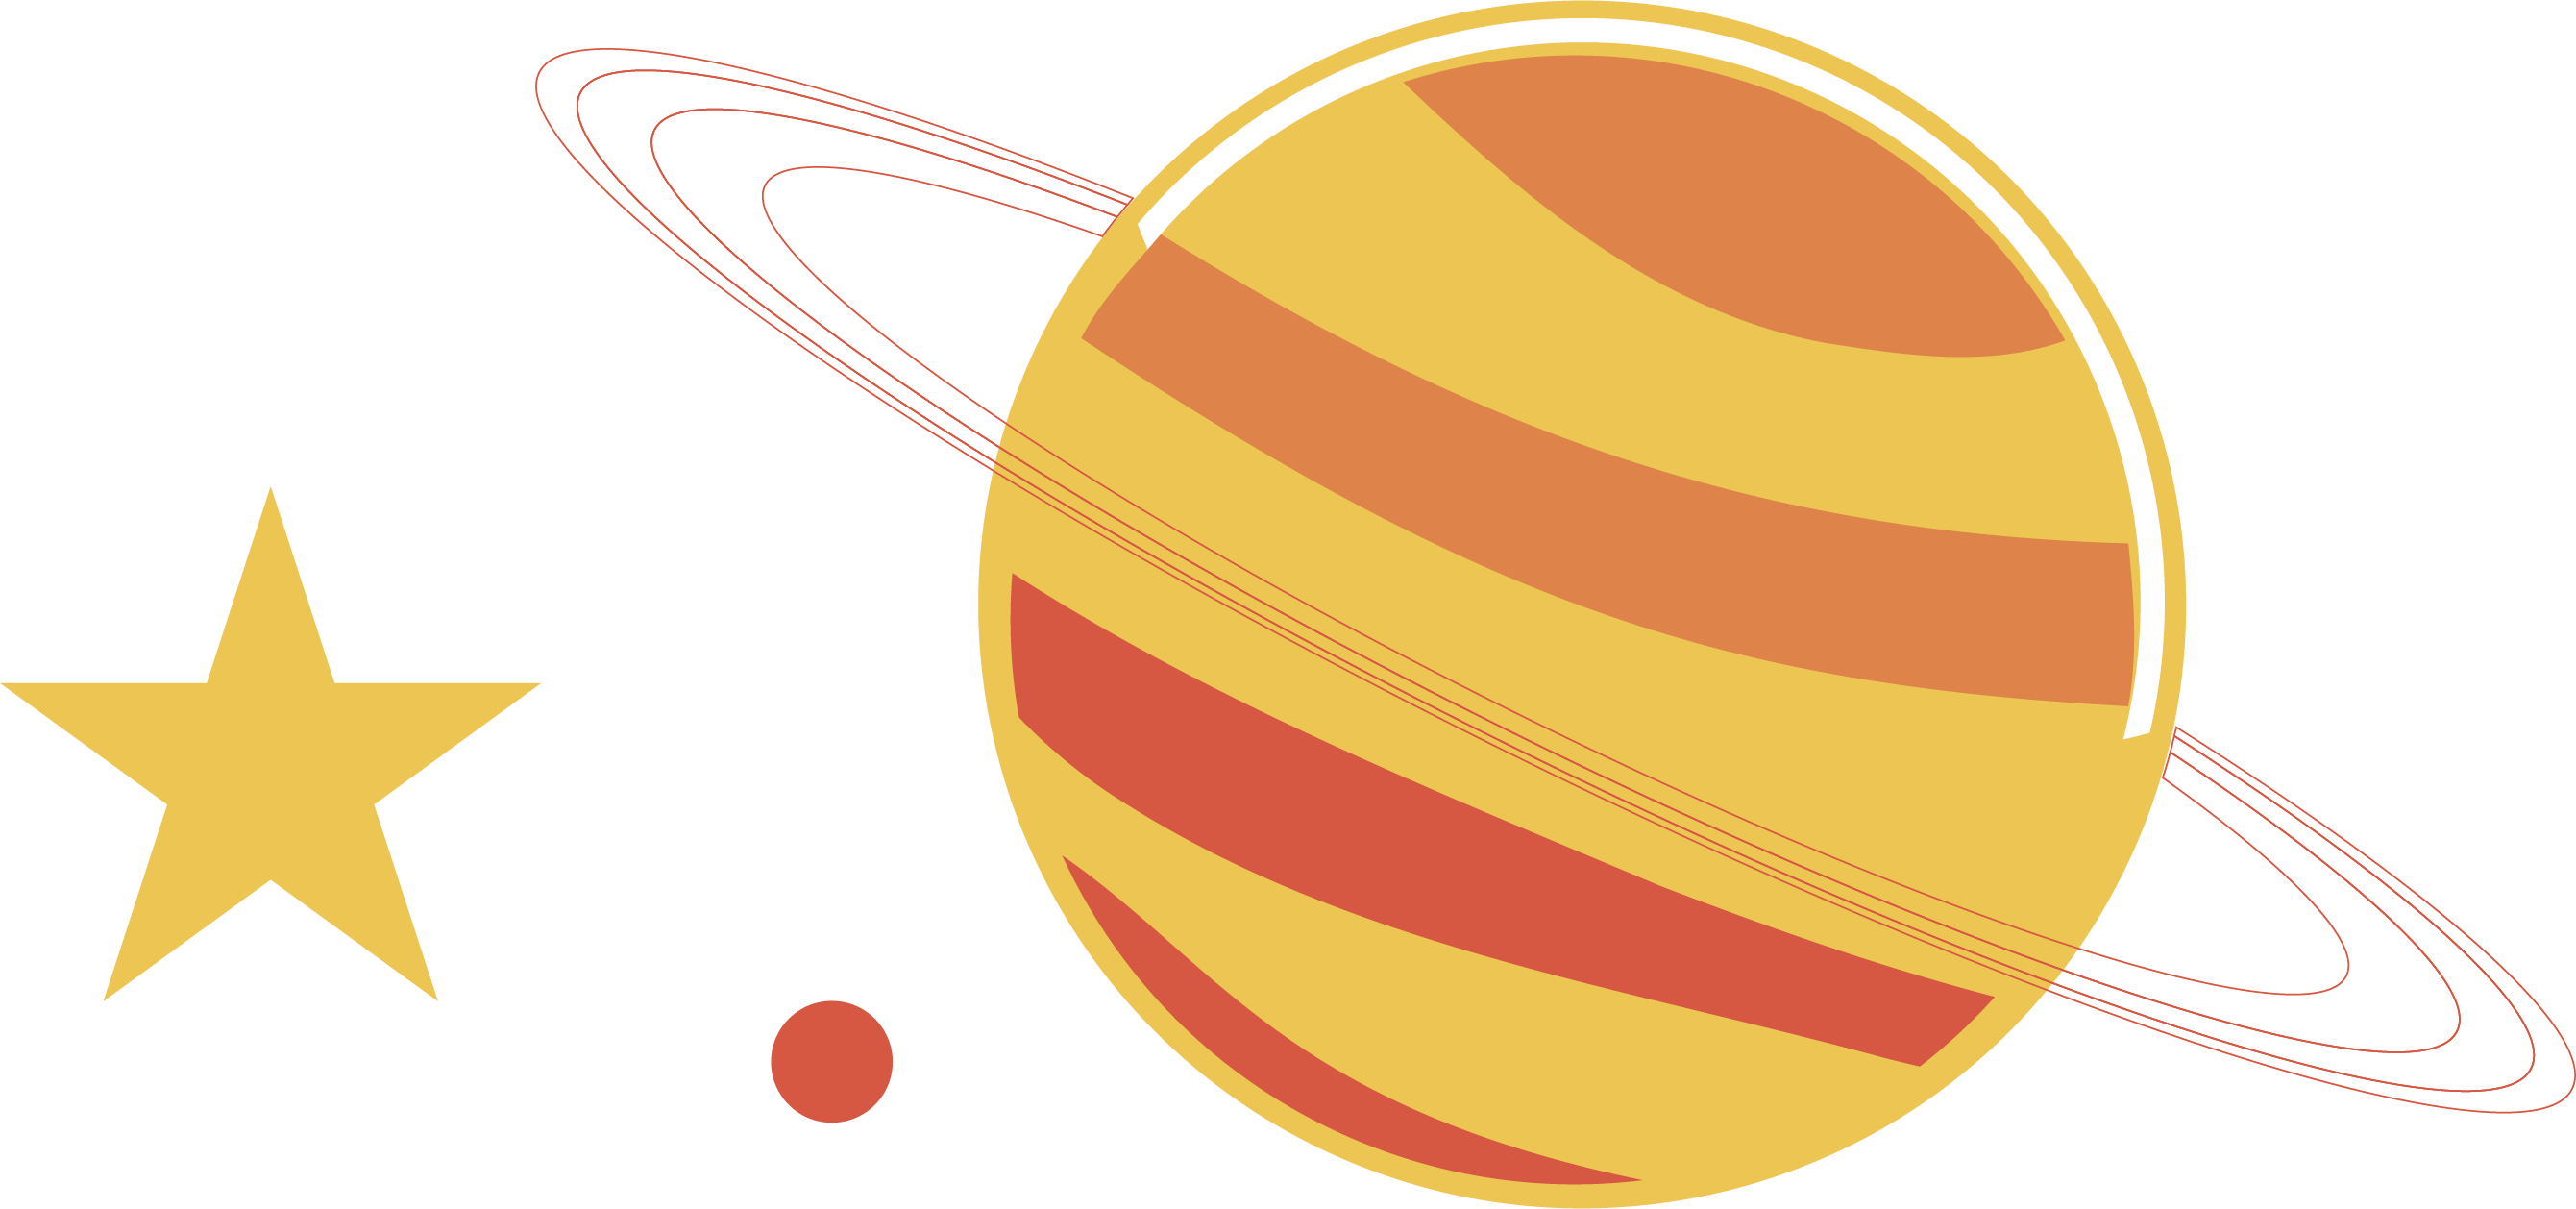 Cartoon transprent png free. Planet clipart star wars planet